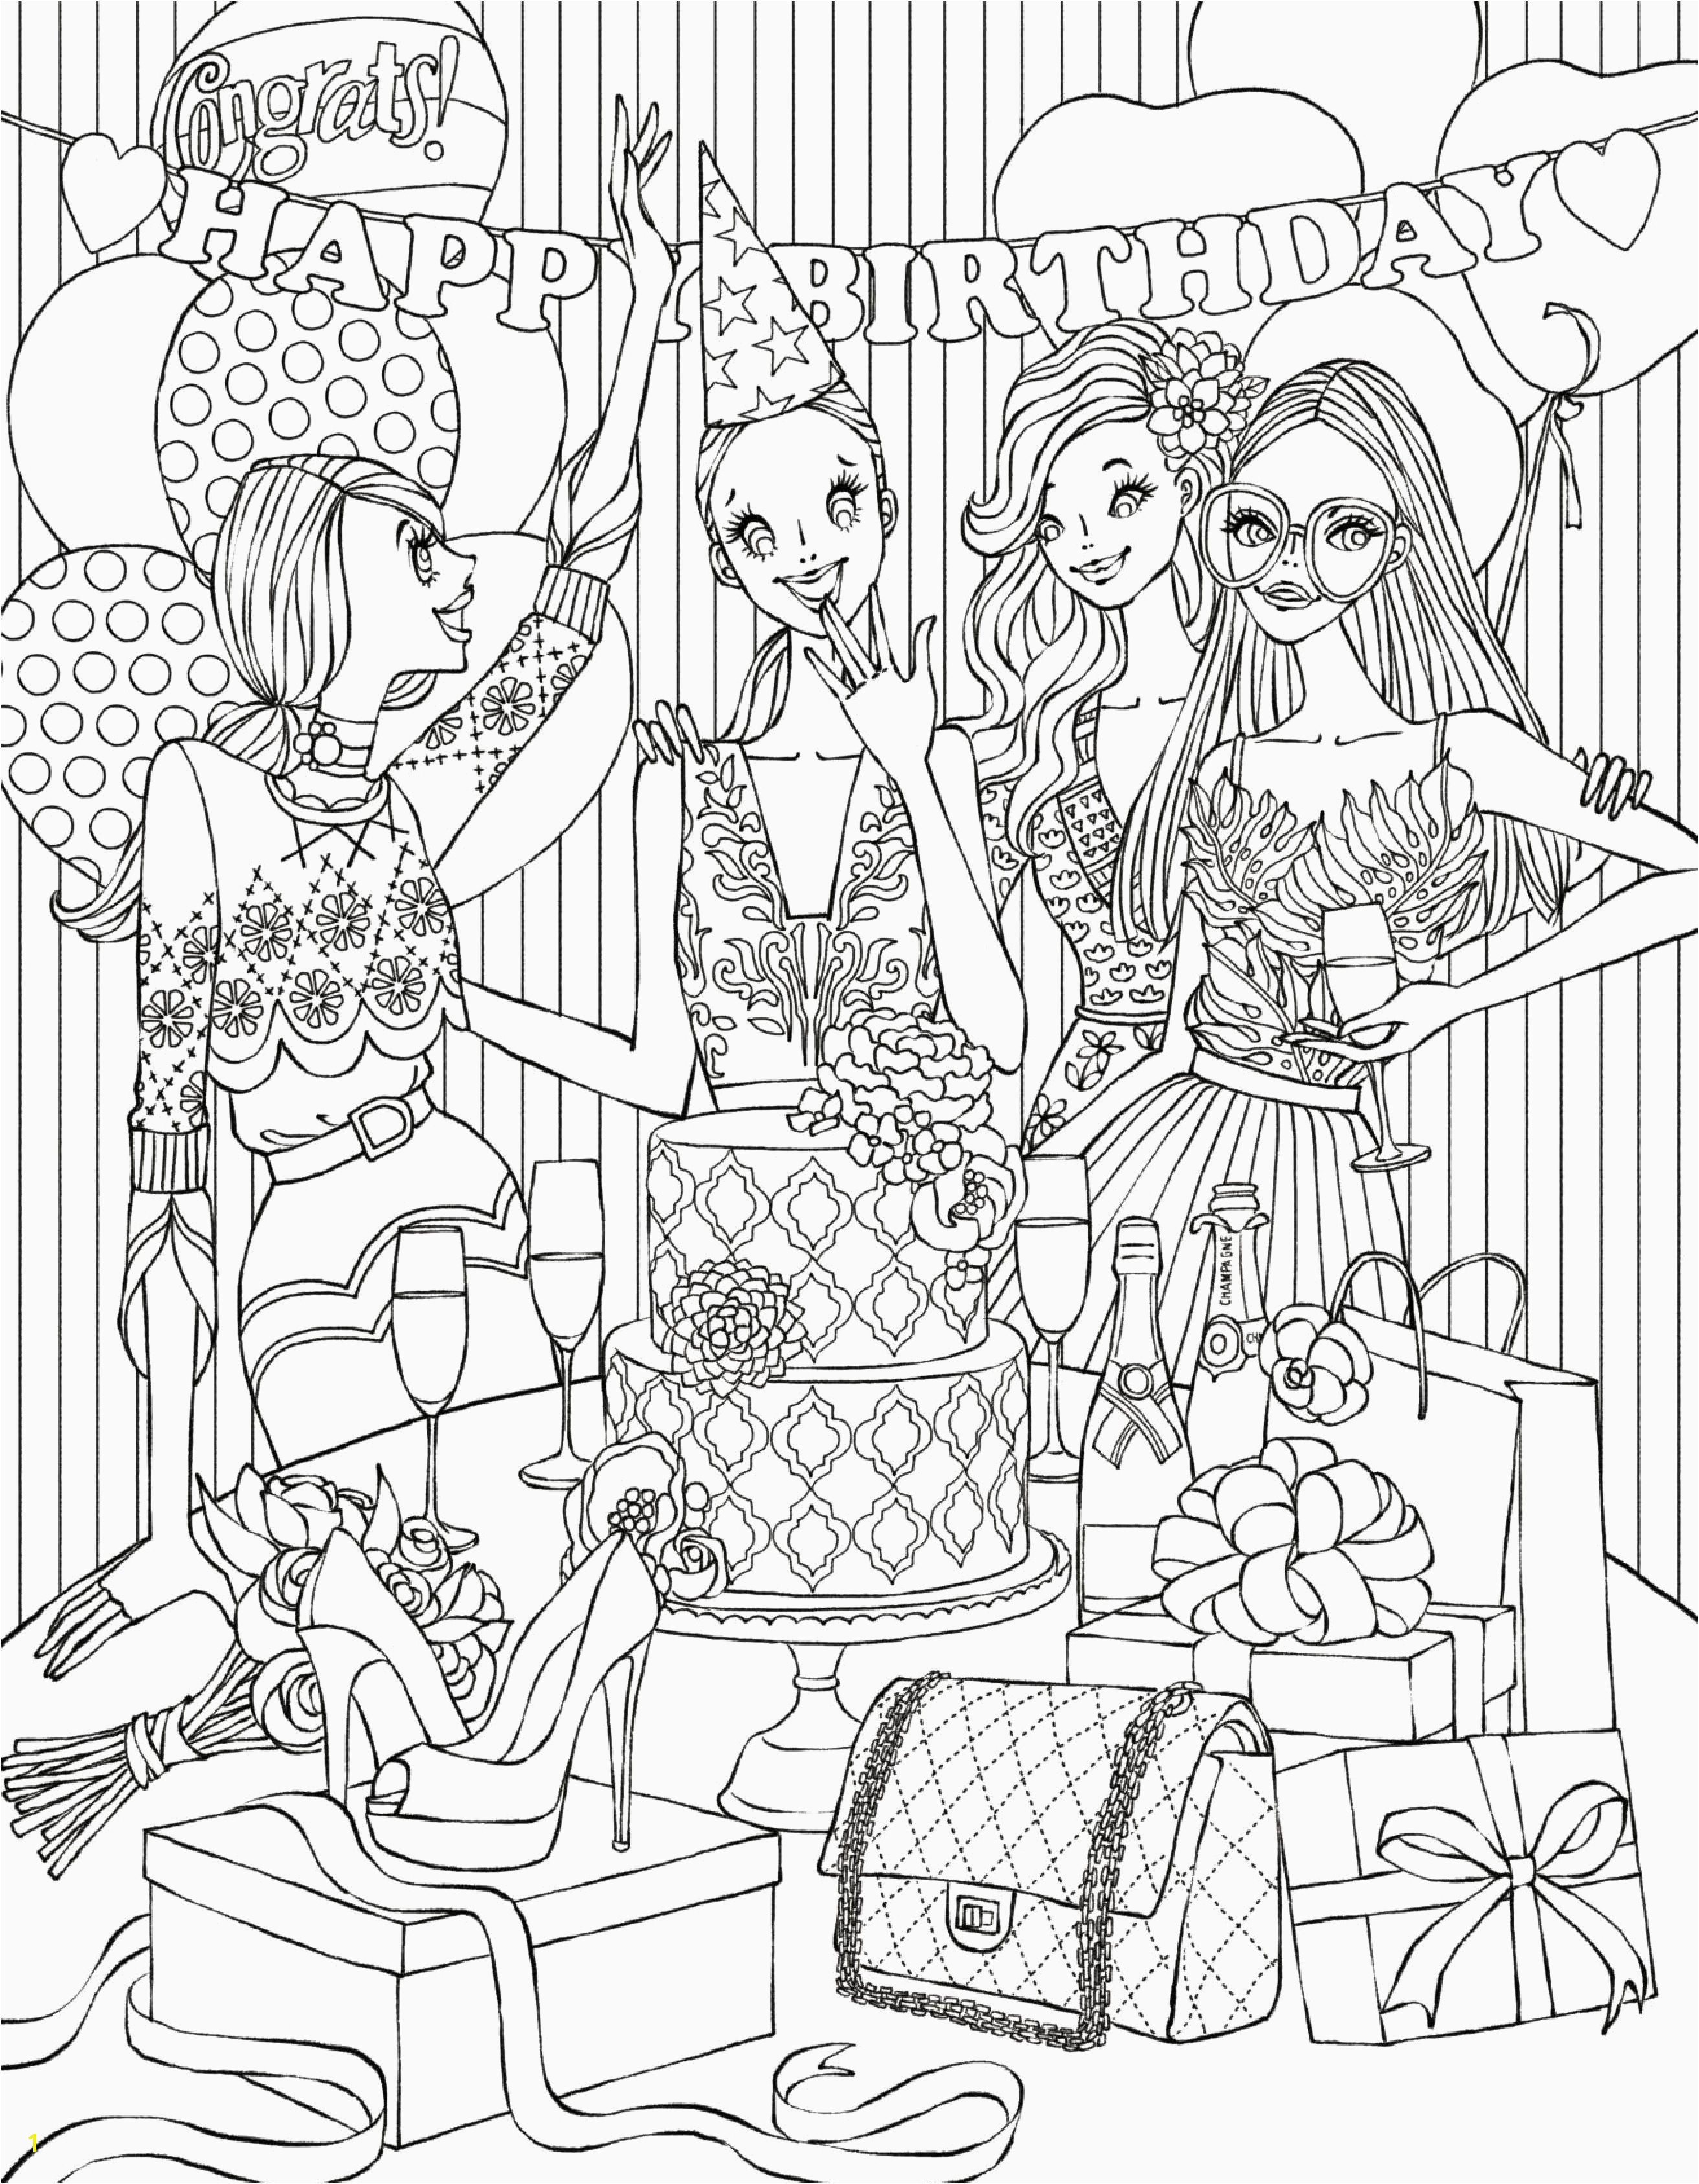 Free Coloring Pages Kitty Best Kitty at the Zoo Coloring Page for Kids for Girls